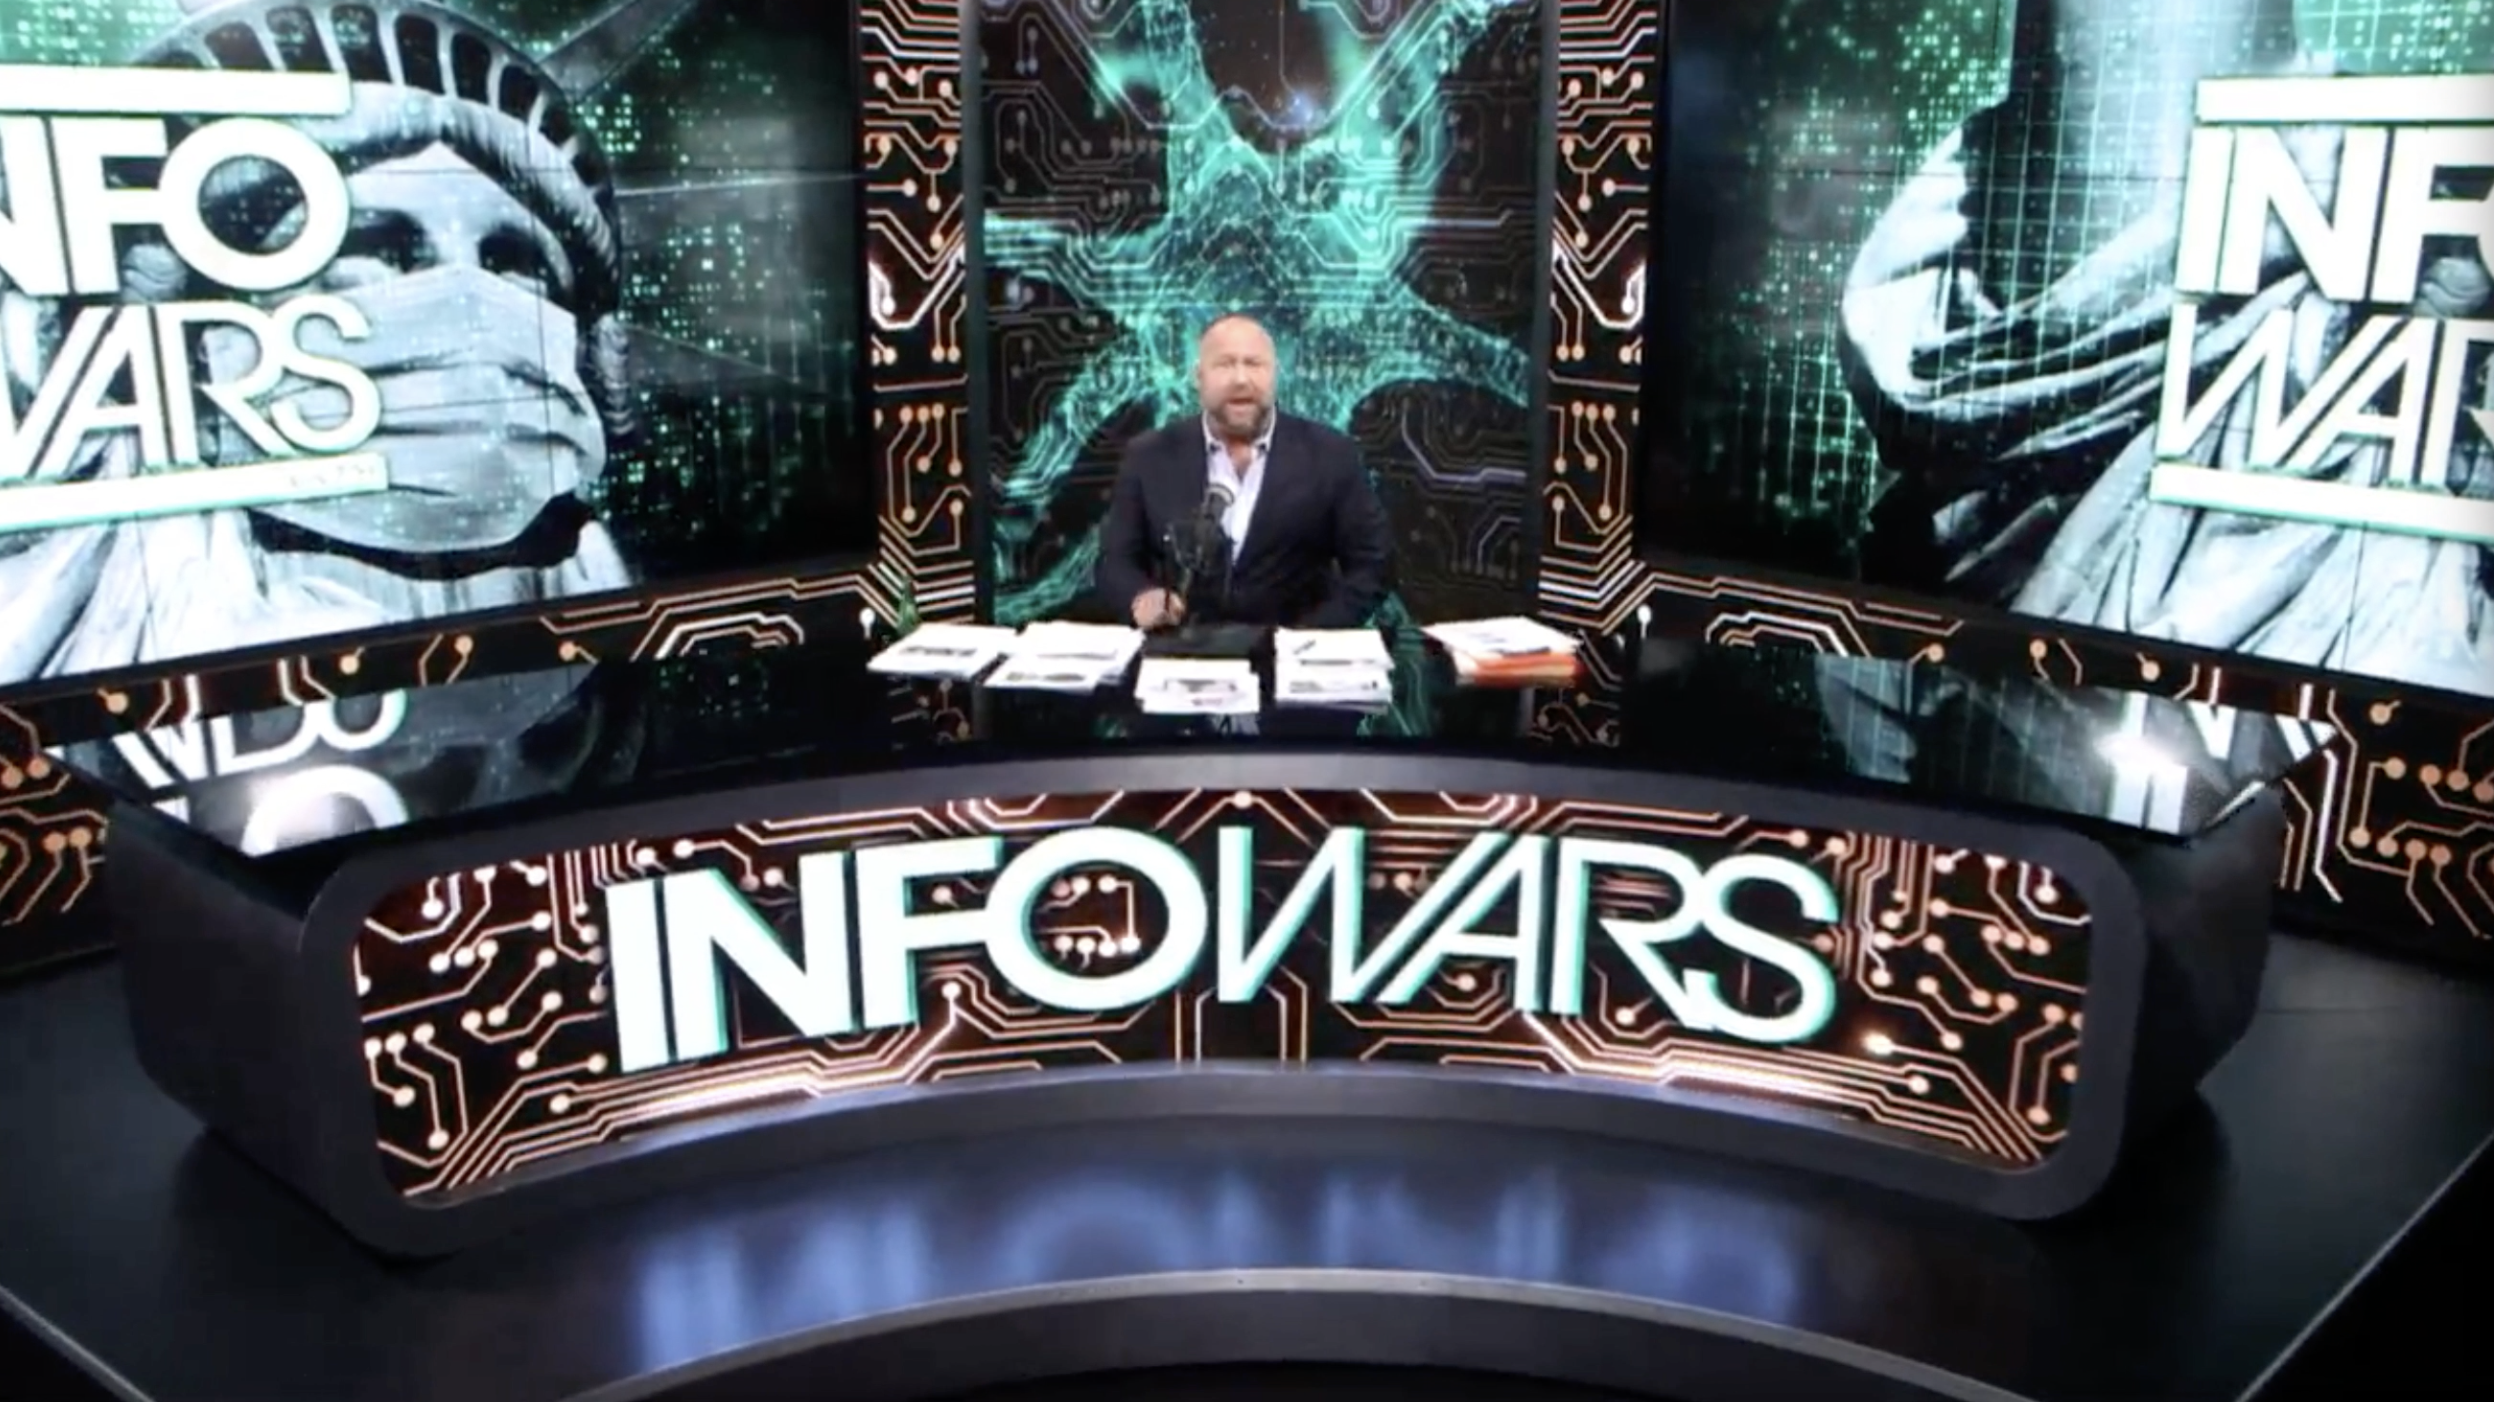 Alex Jones Infowars 3 27 2020